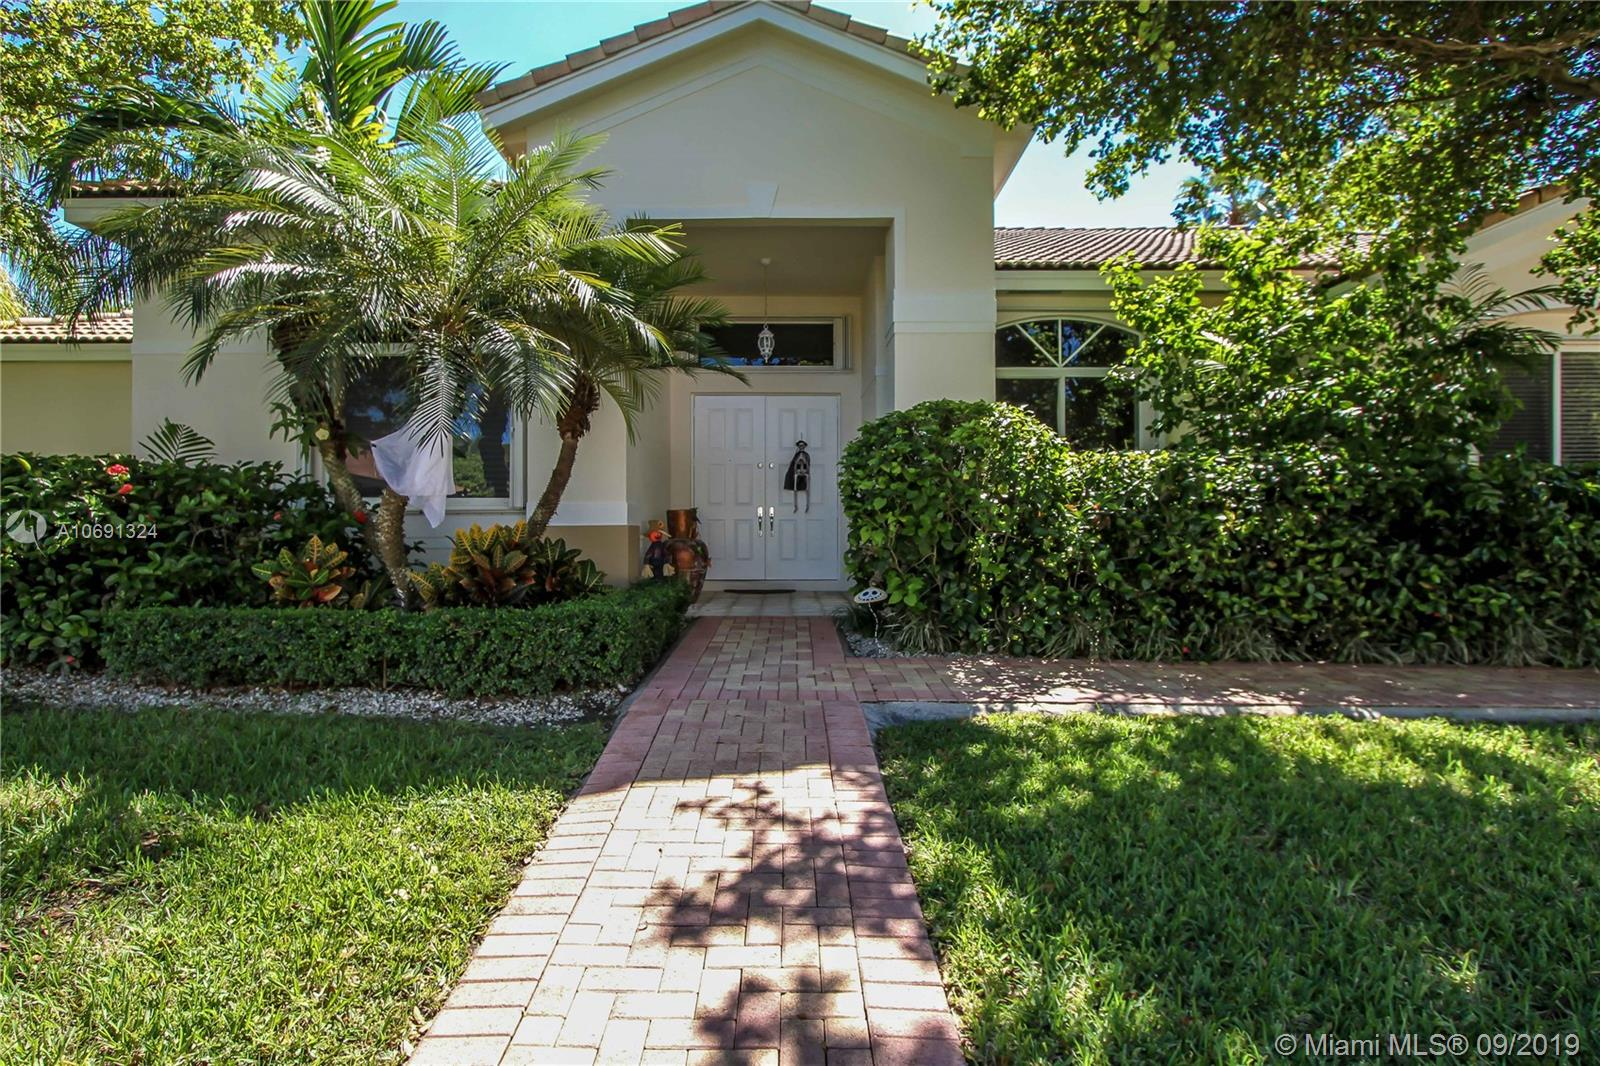 8440 SW 136th Ter, Kendall, Florida